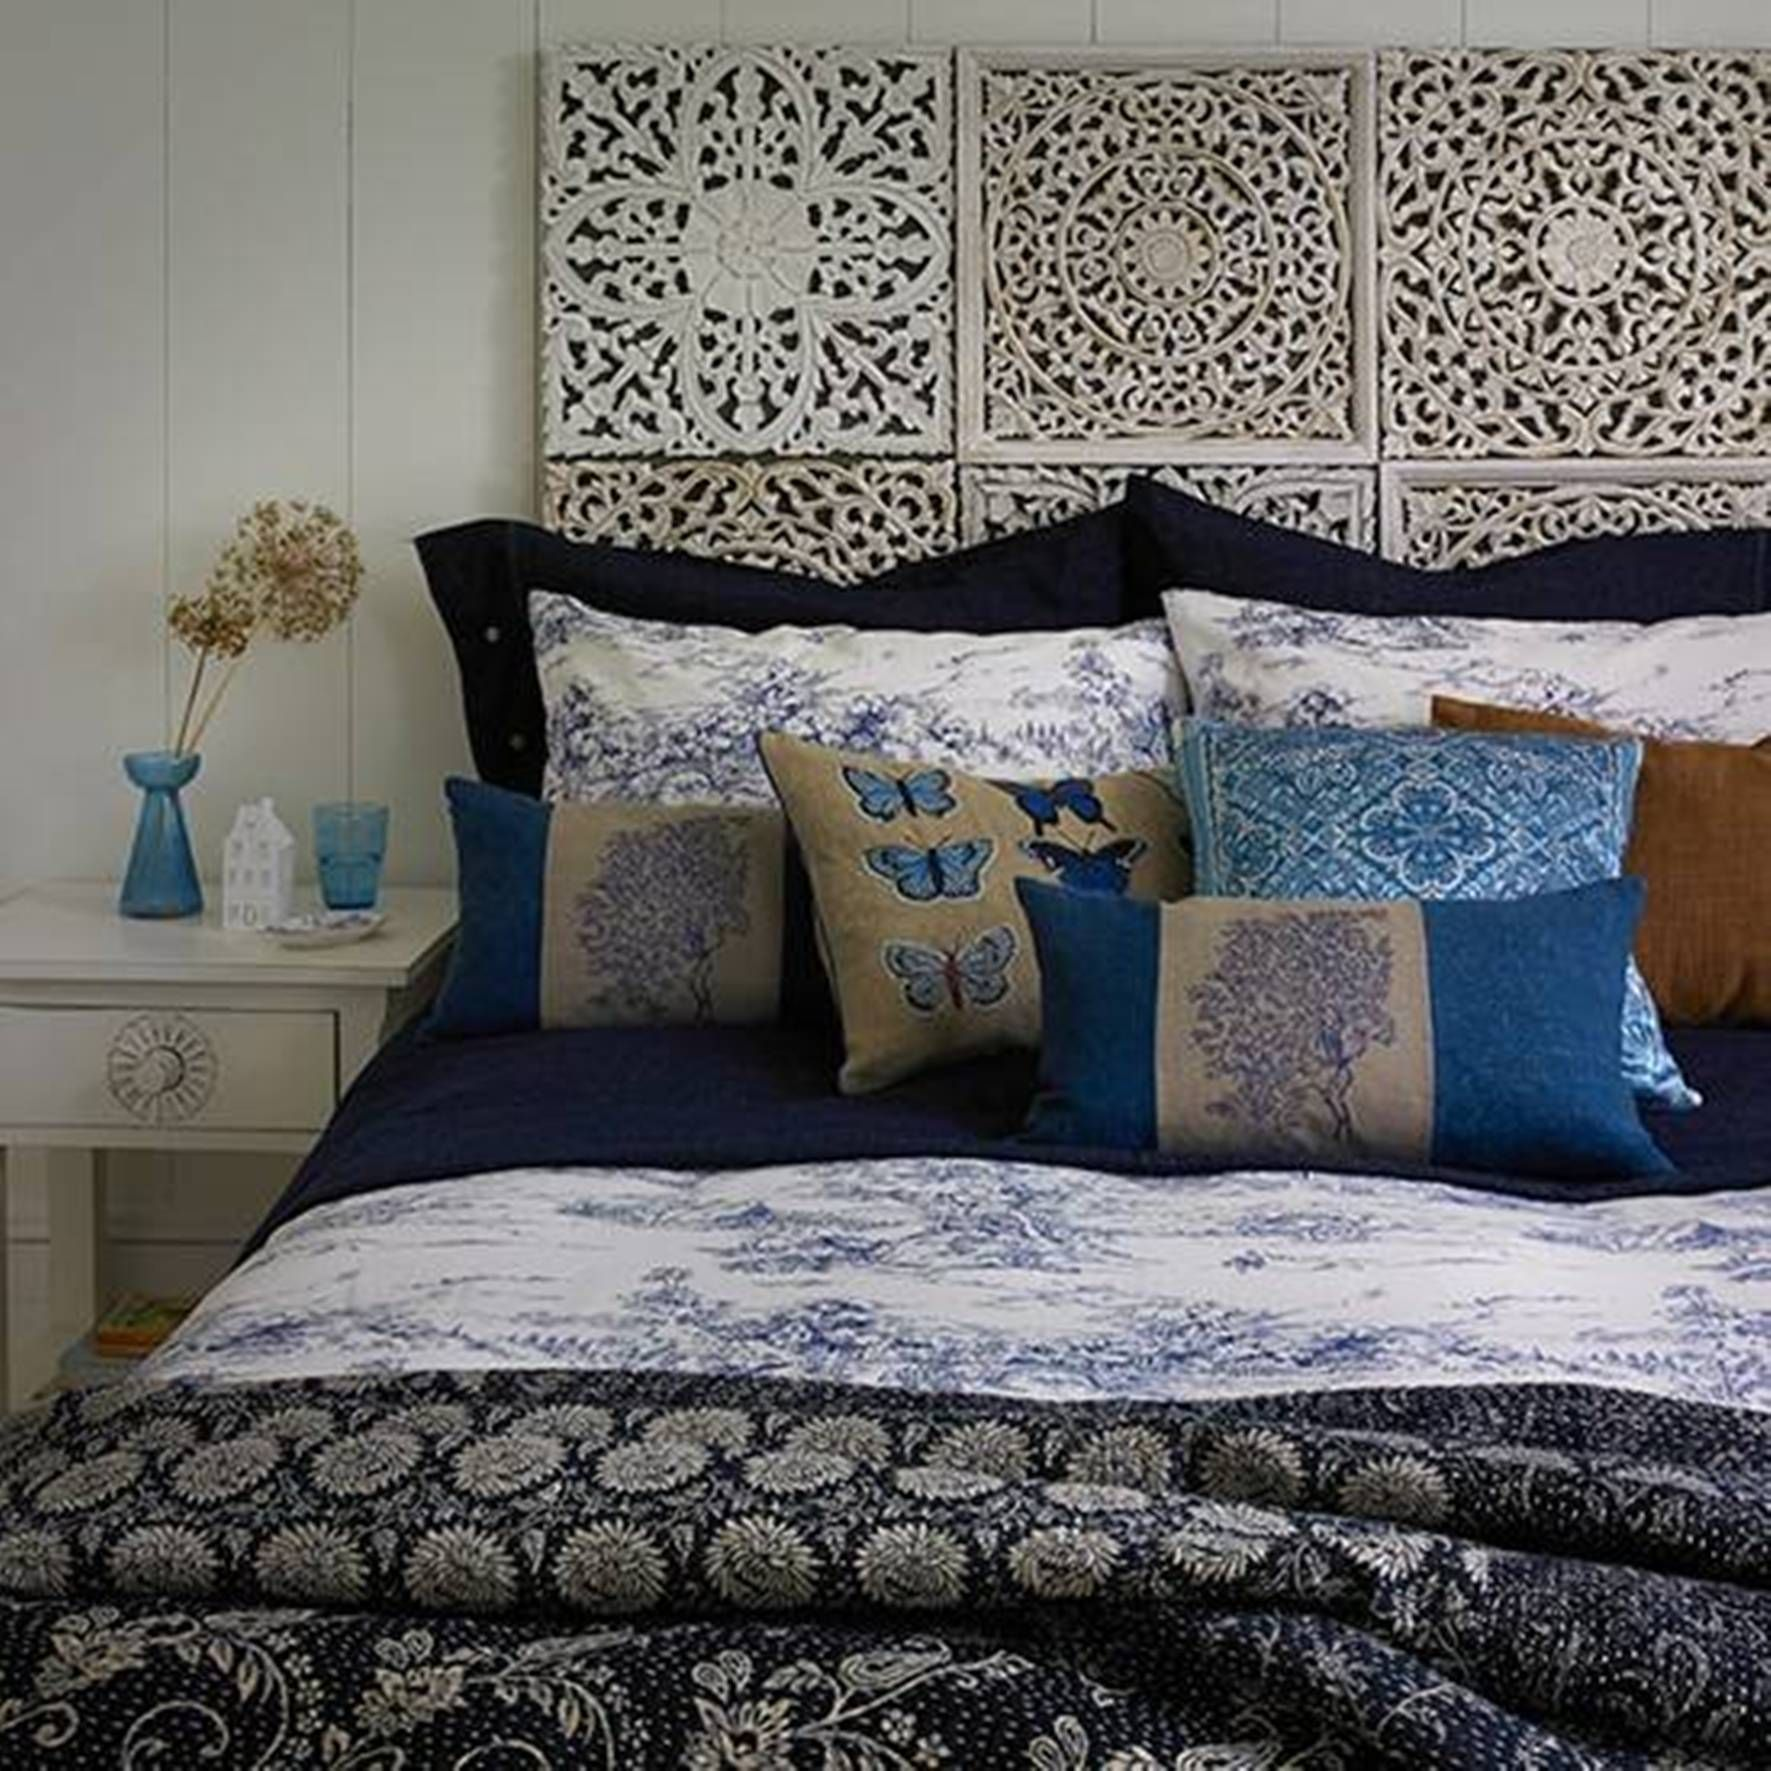 Home Design and Decor , Decorating Beds Without Headboards